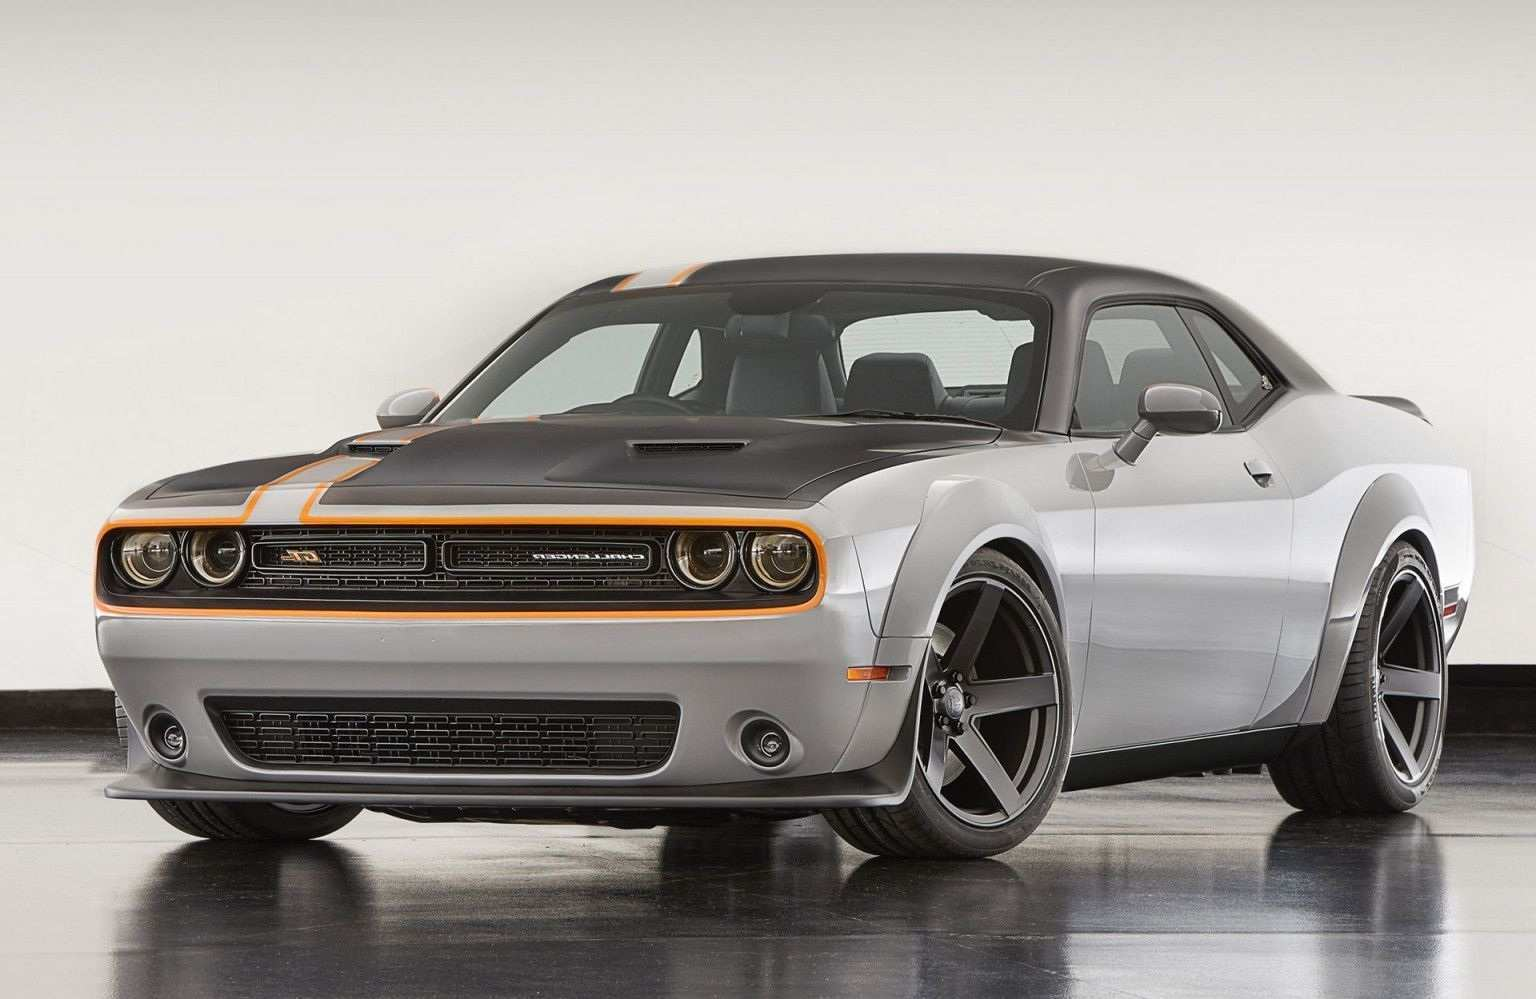 64 All New When Will The 2020 Dodge Challenger Come Out Wallpaper by When Will The 2020 Dodge Challenger Come Out